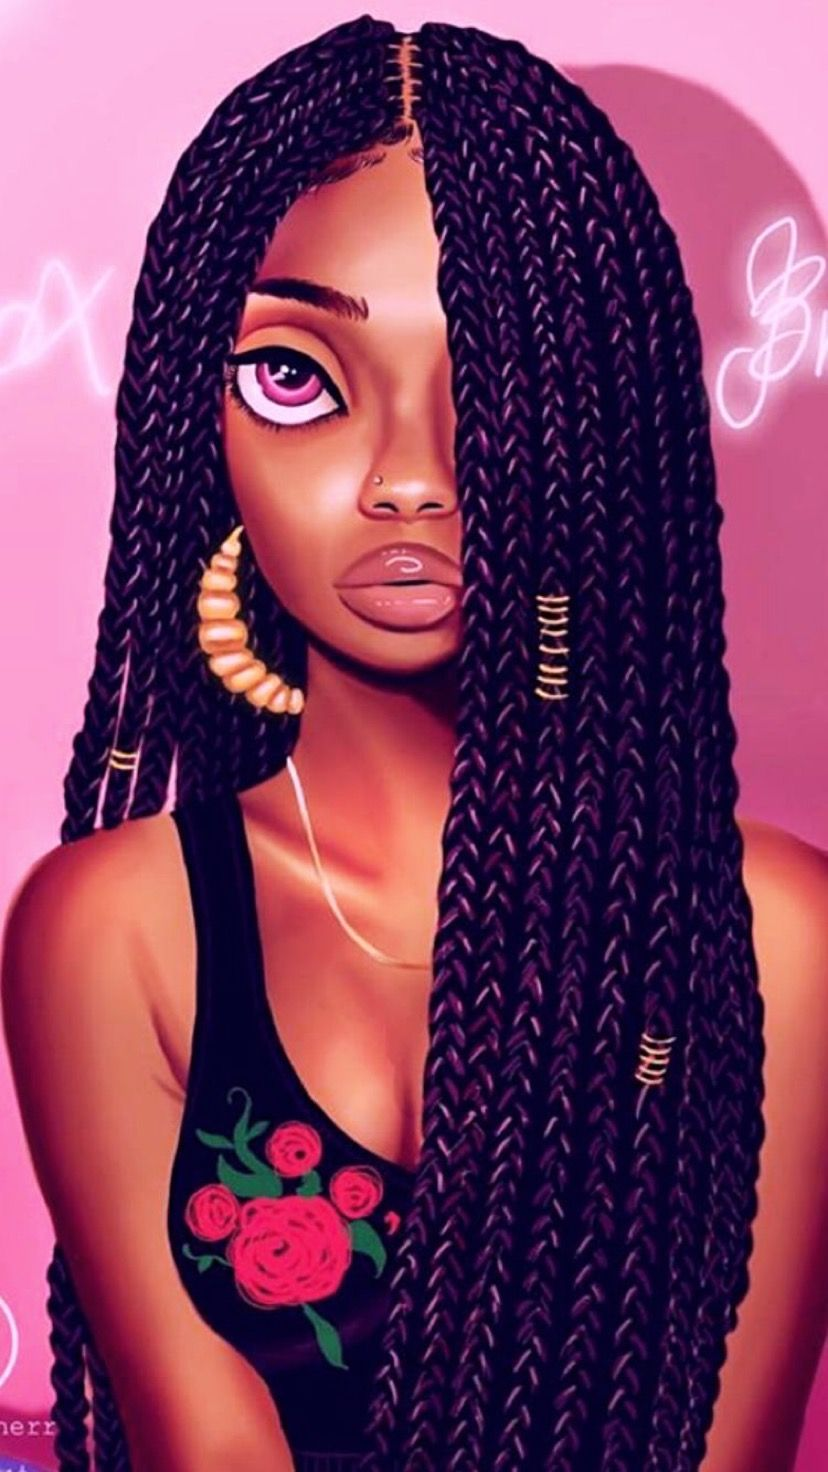 Pin On Black Girl Magic Art